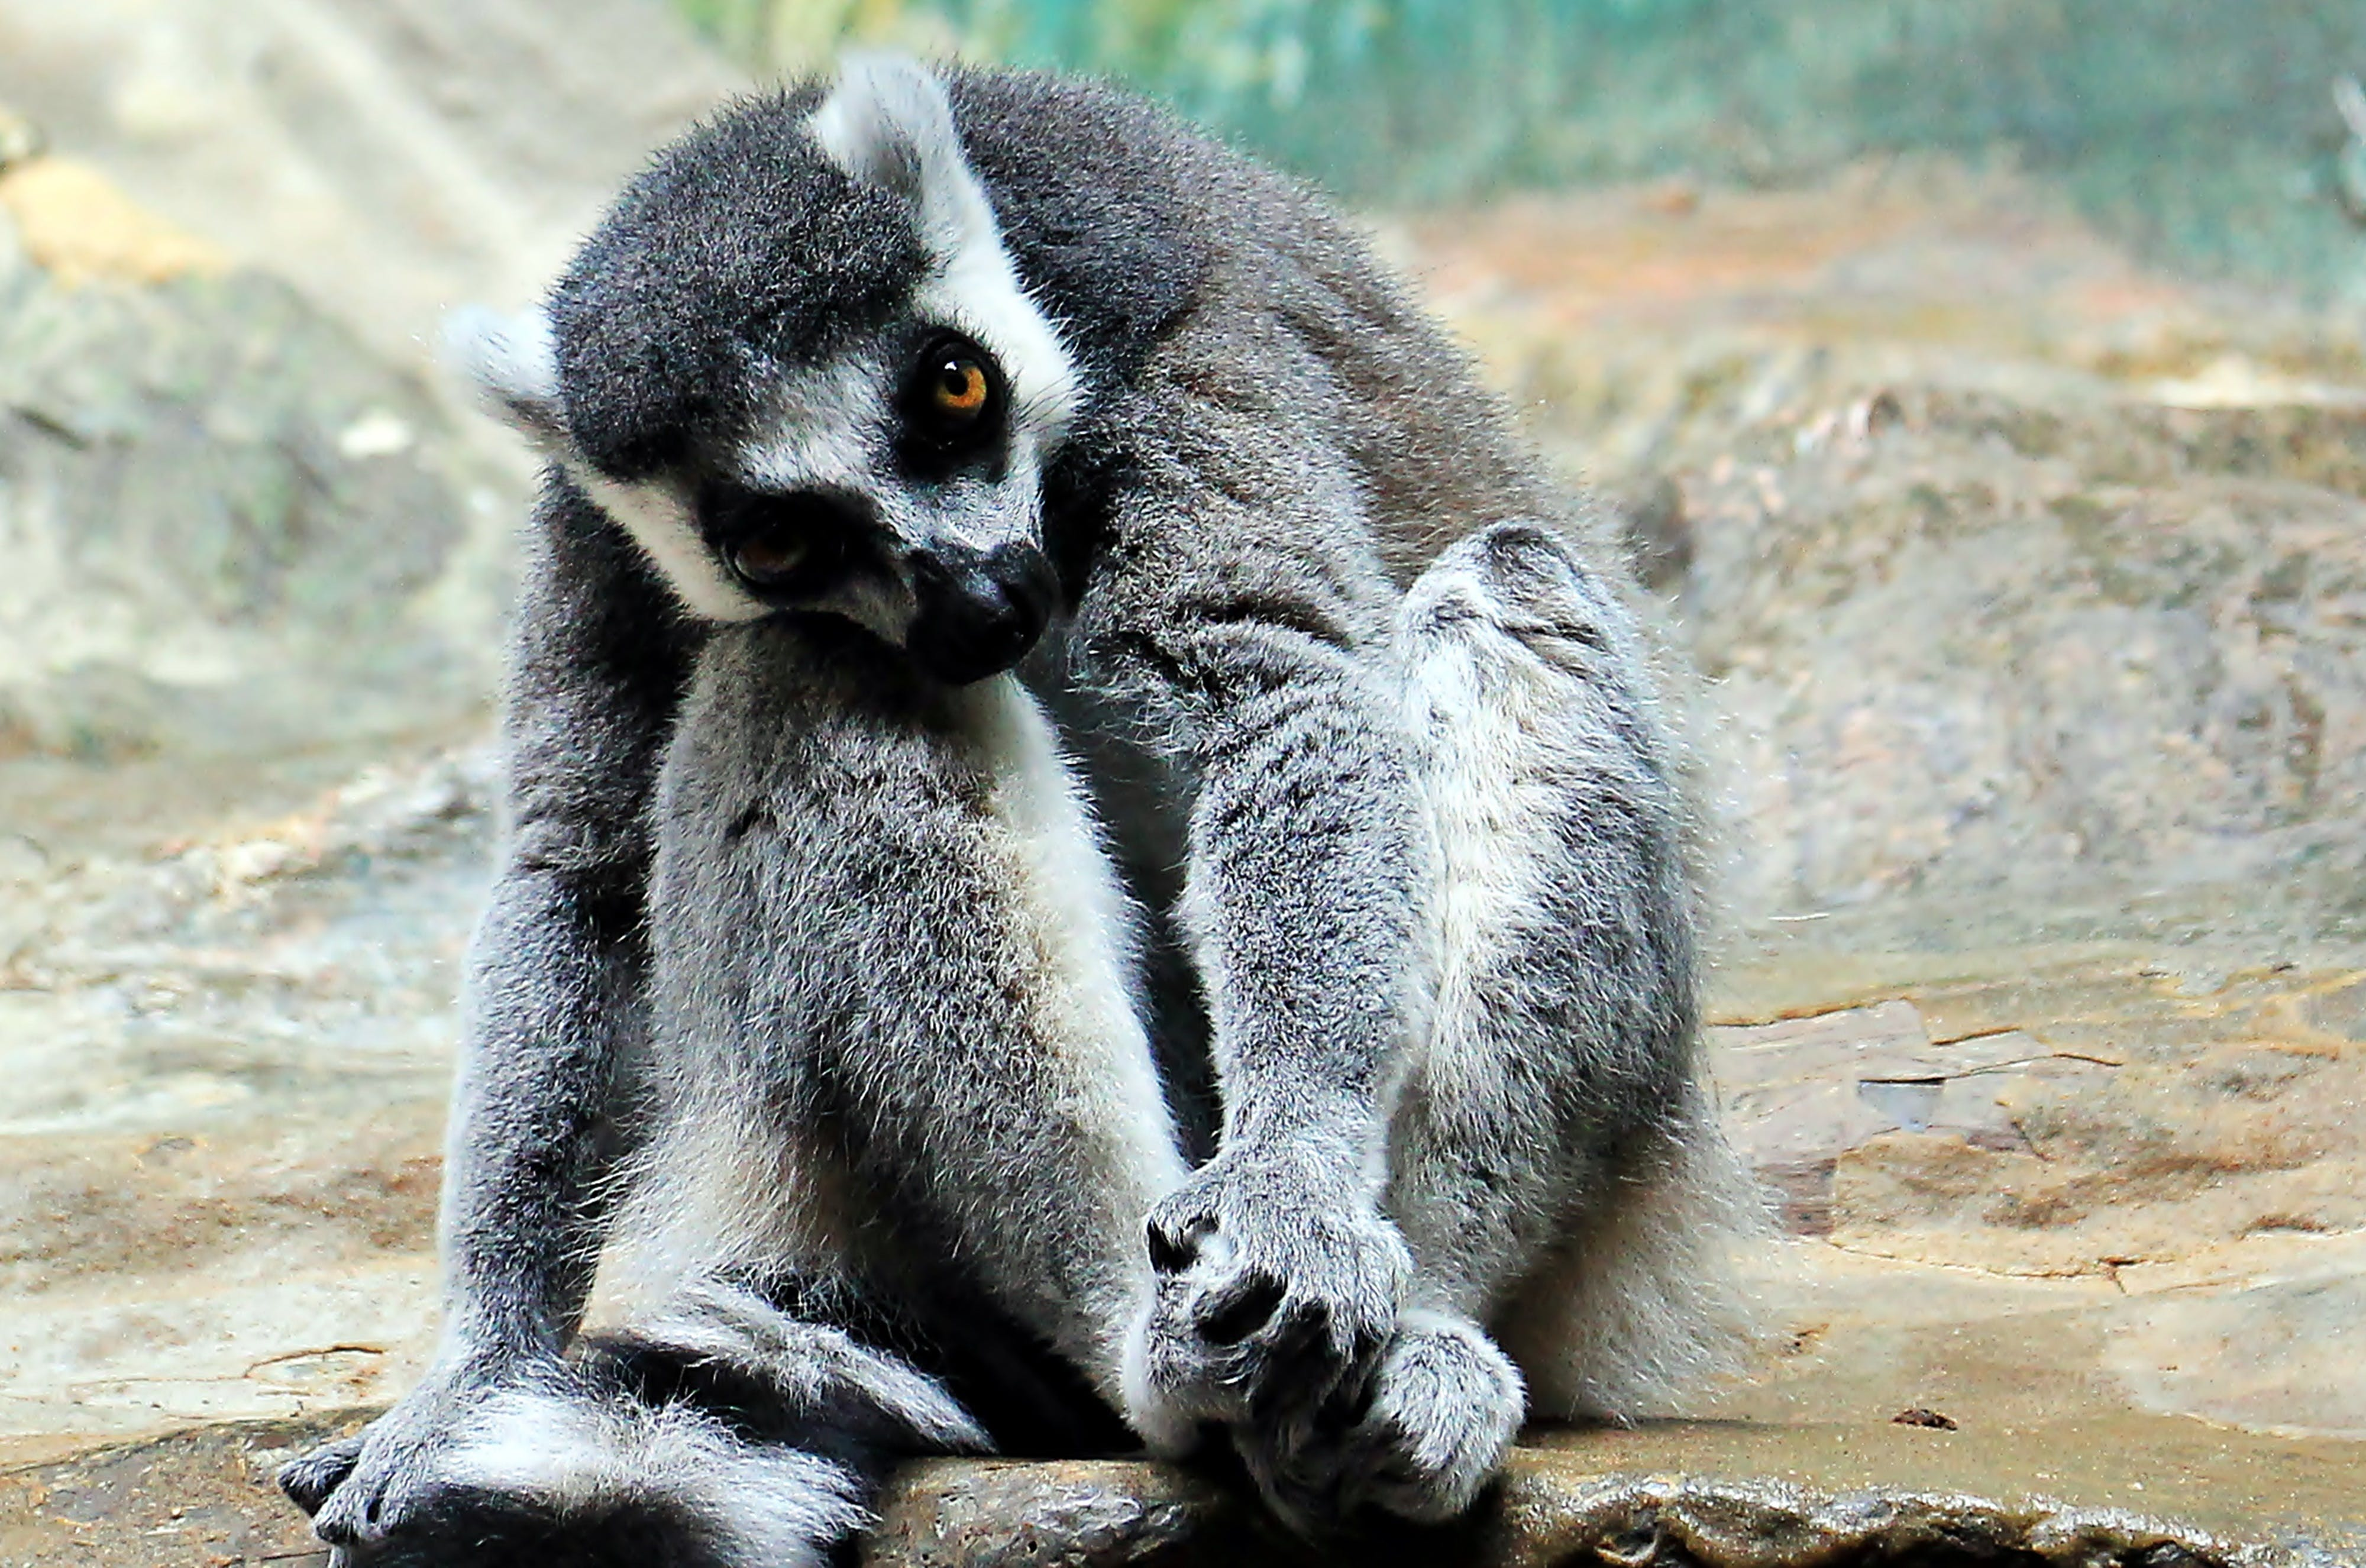 Gray Lemur Sitting on Rock